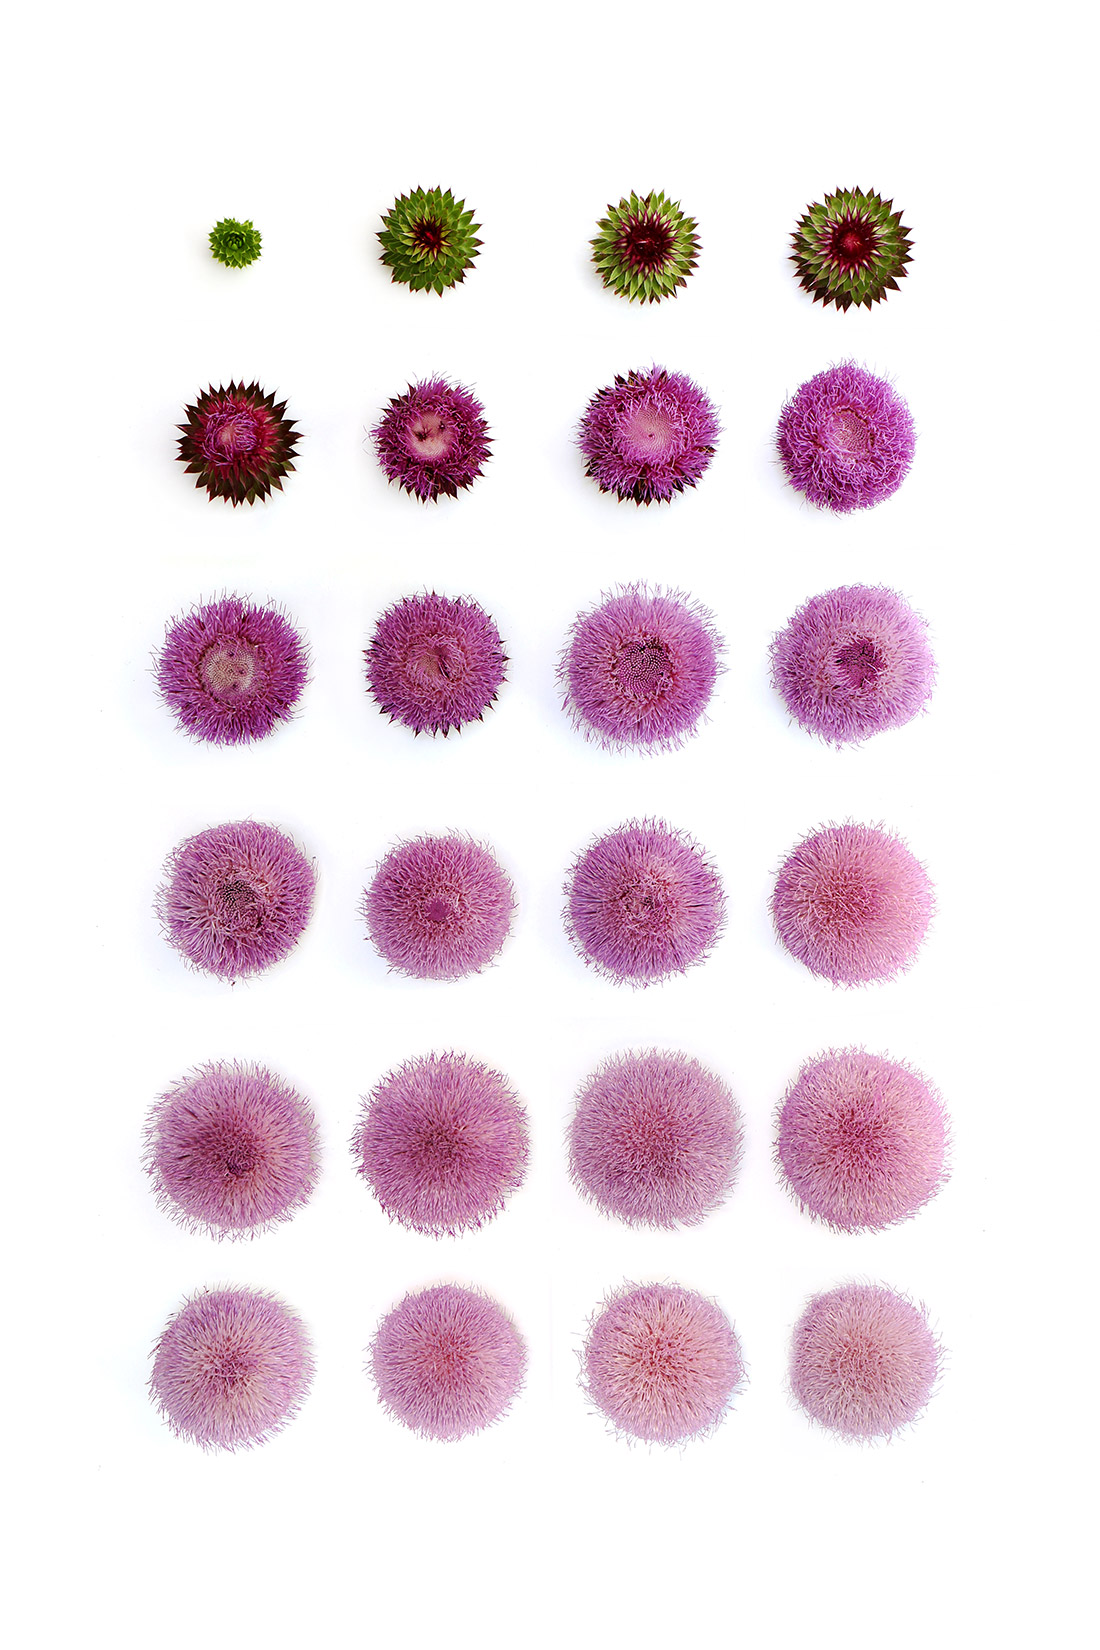 the life cycle of the musk thistle